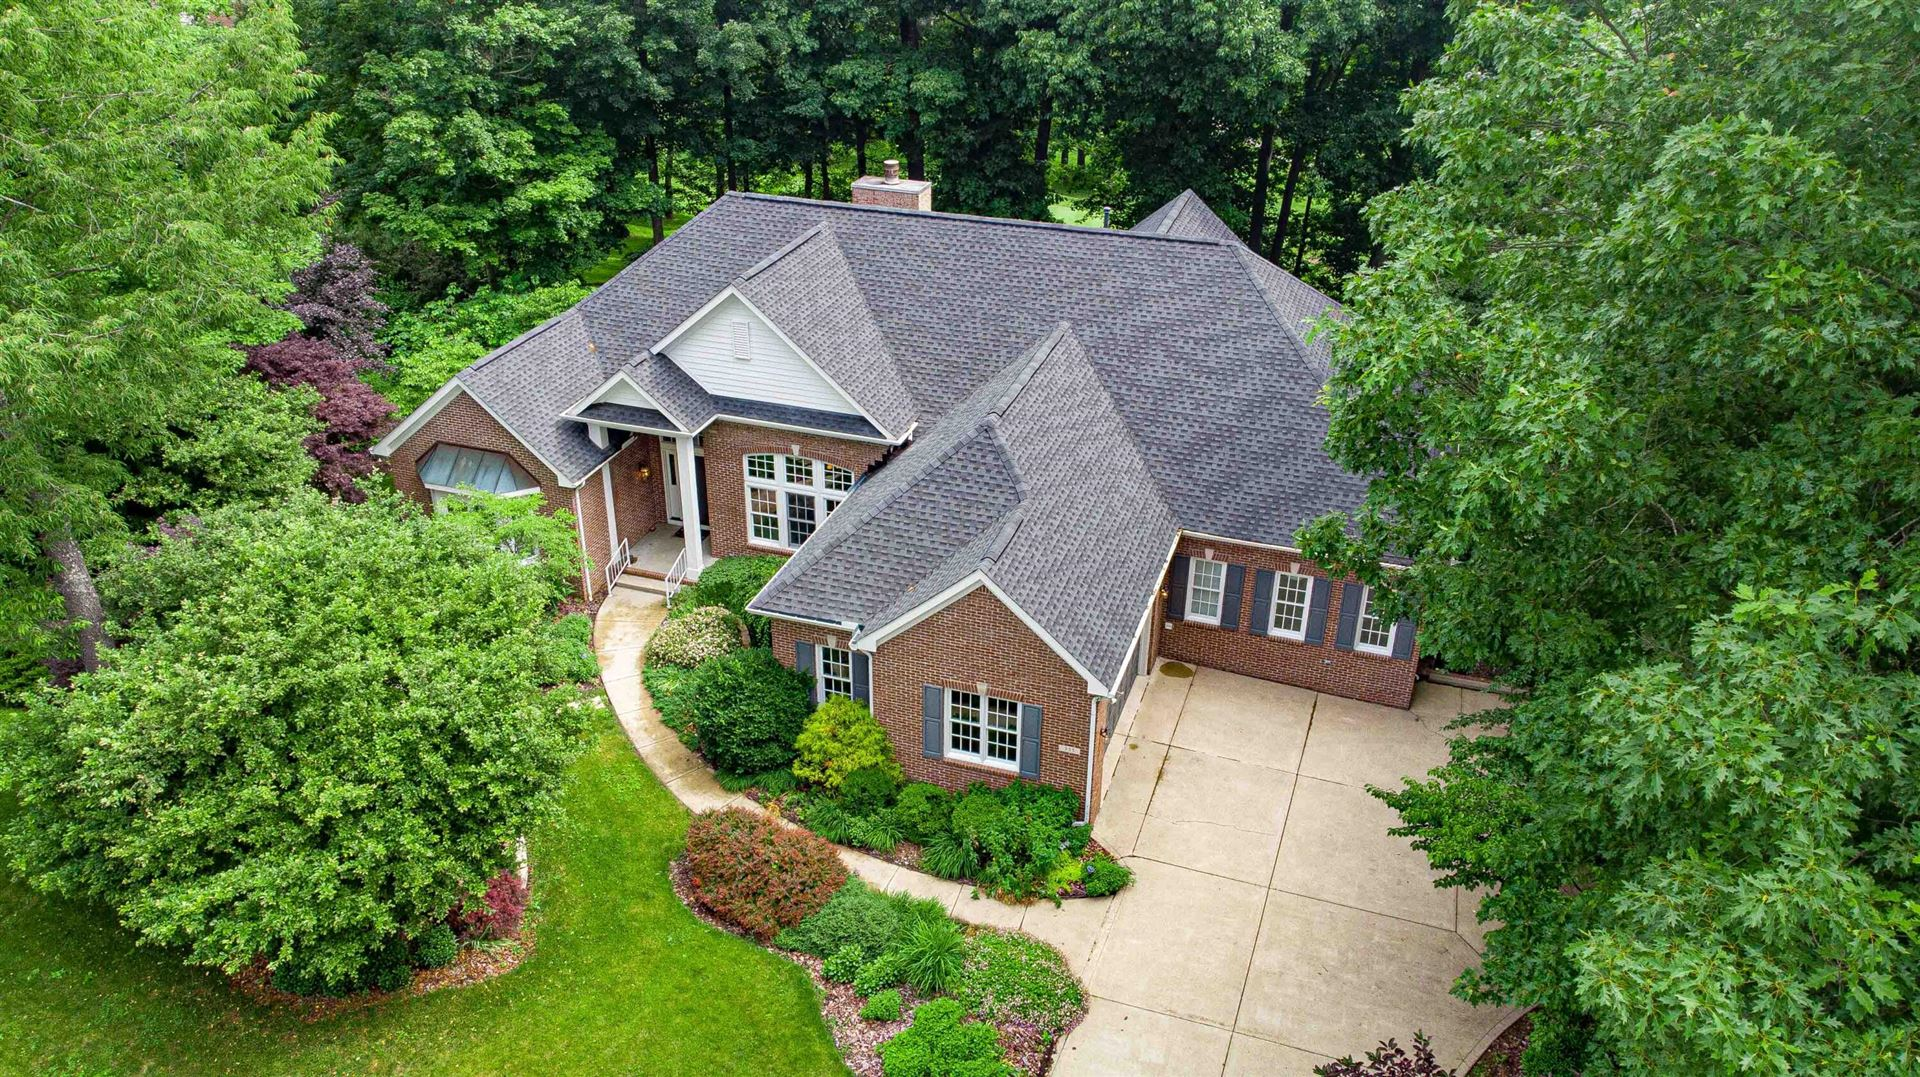 Photo for 355 Bryn Du Drive, Granville, OH 43023 (MLS # 221020575)